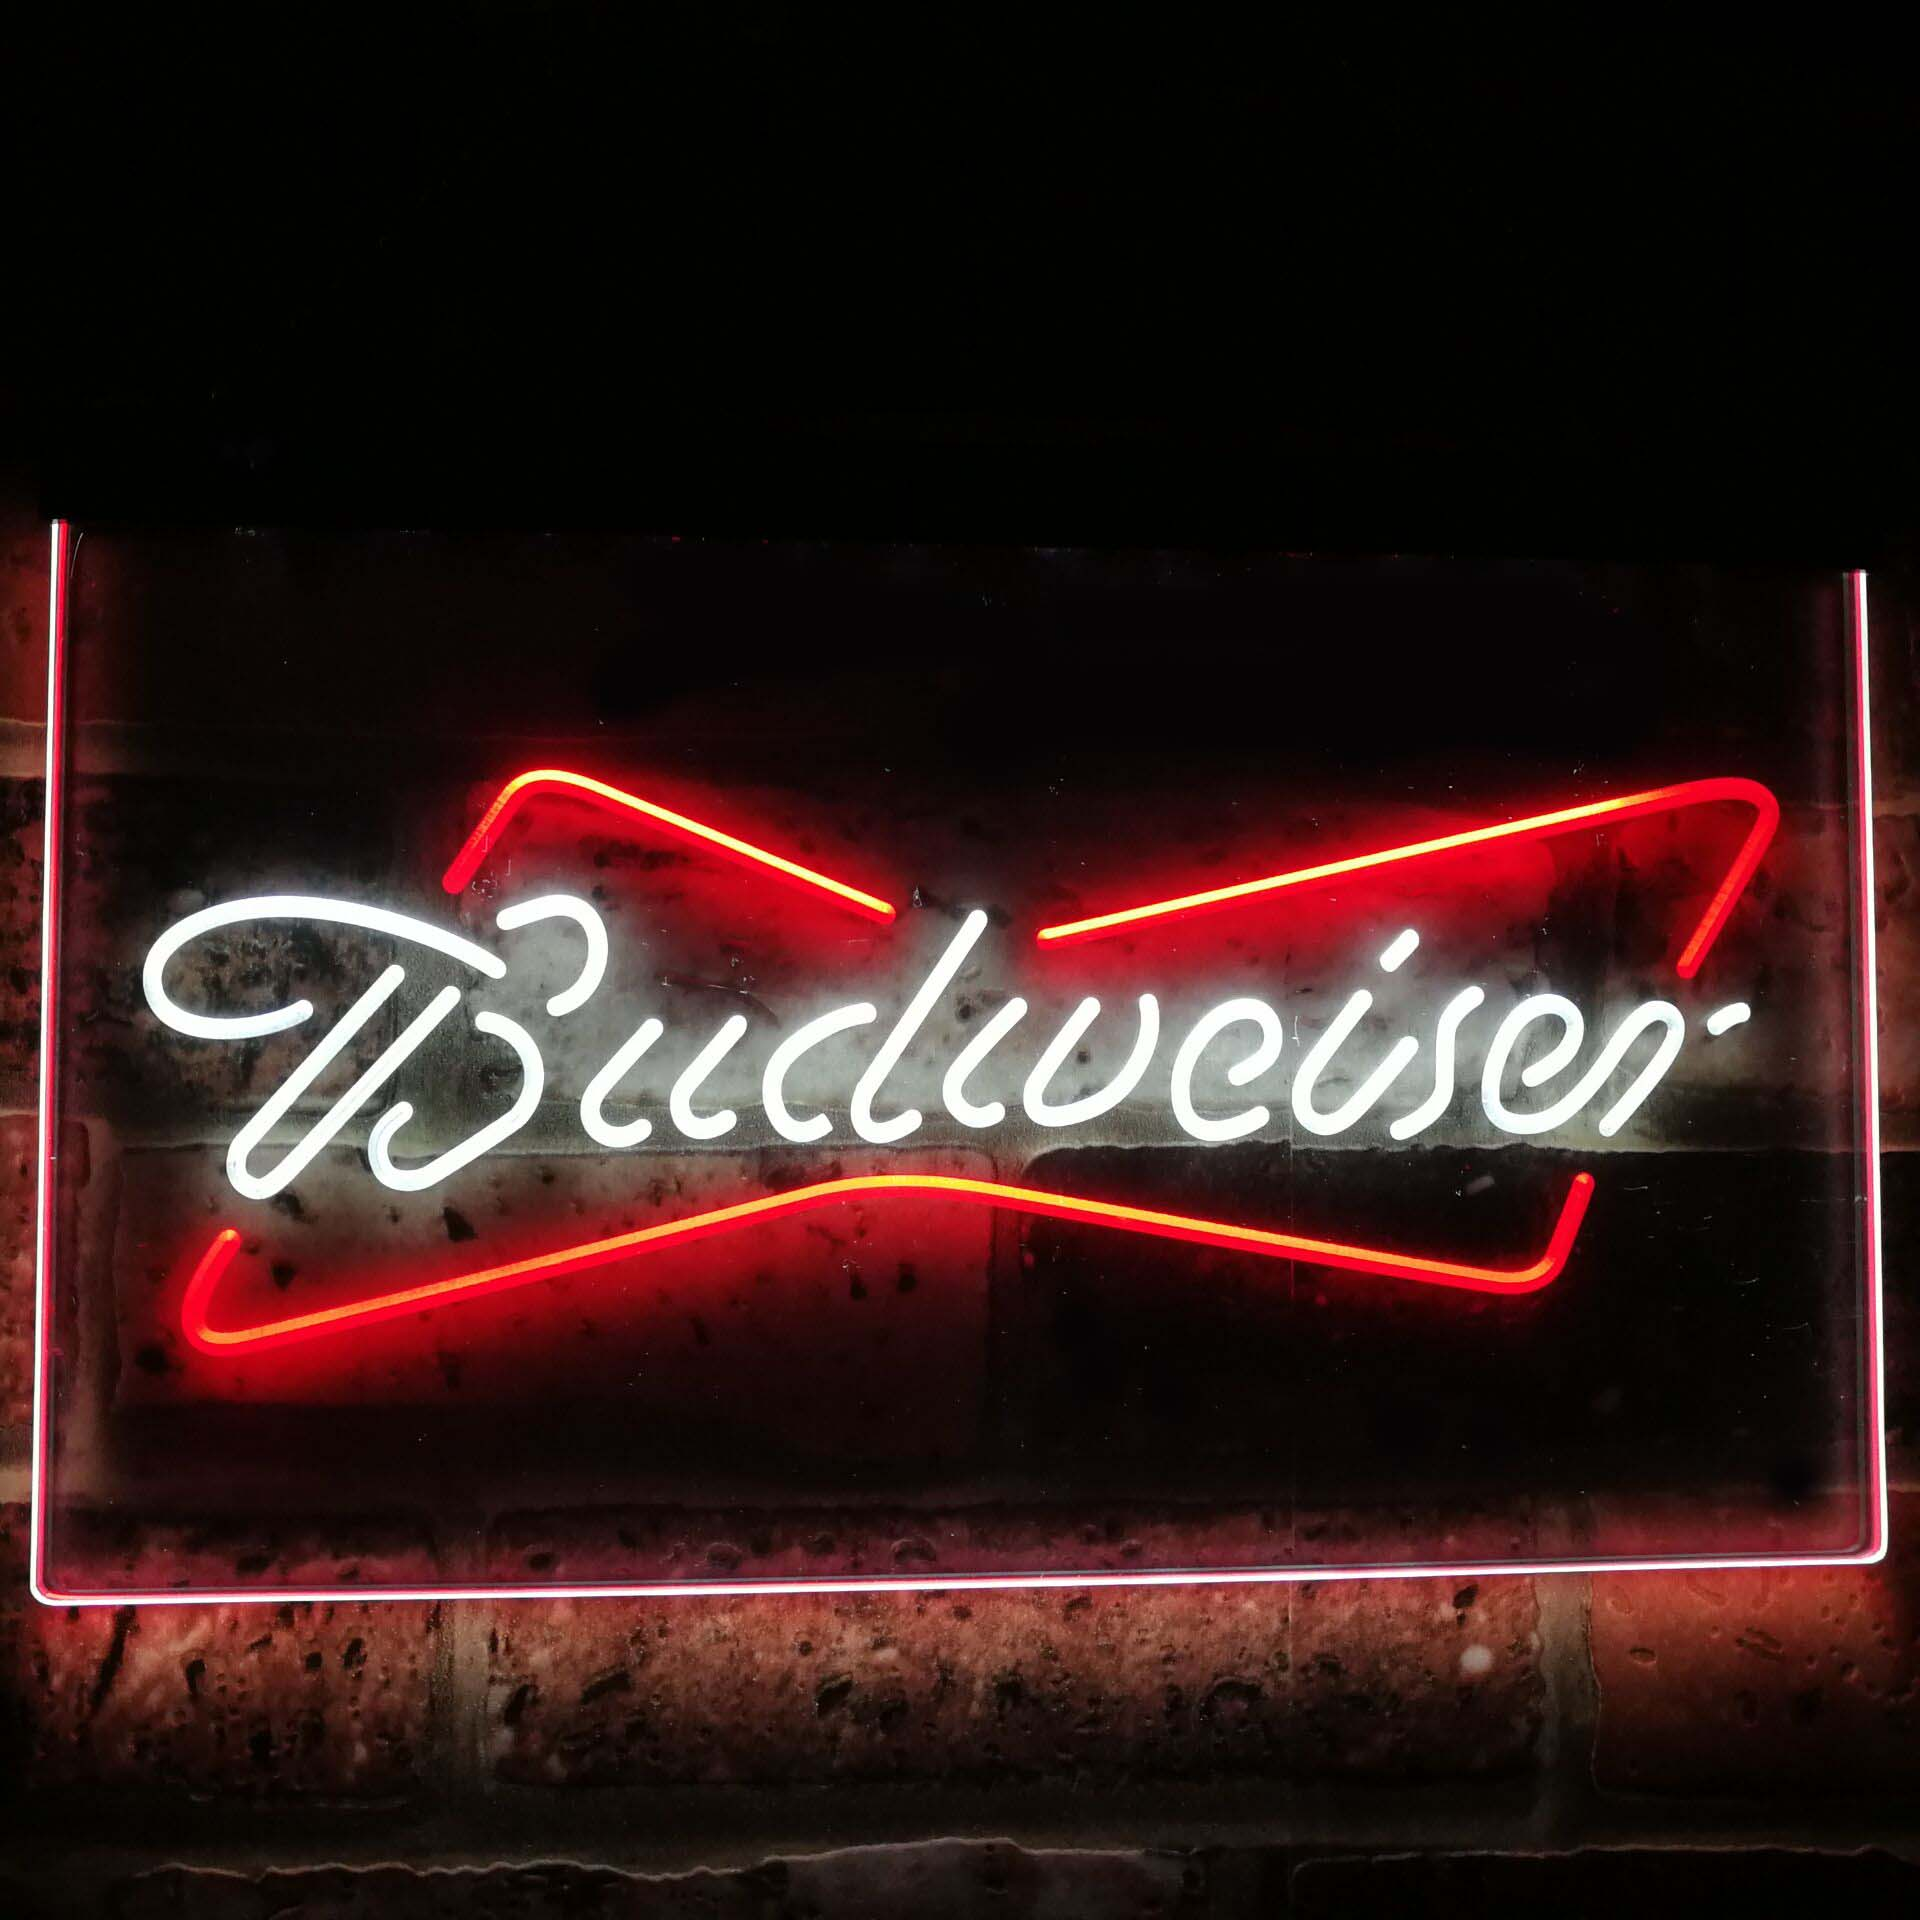 Budweiser Classic Beer Bar Decoration Gift Dual Color Led Neon Light Signs st6-a2009Budweiser Classic Beer Bar Decoration Gift Dual Color Led Neon Light Signs st6-a2009